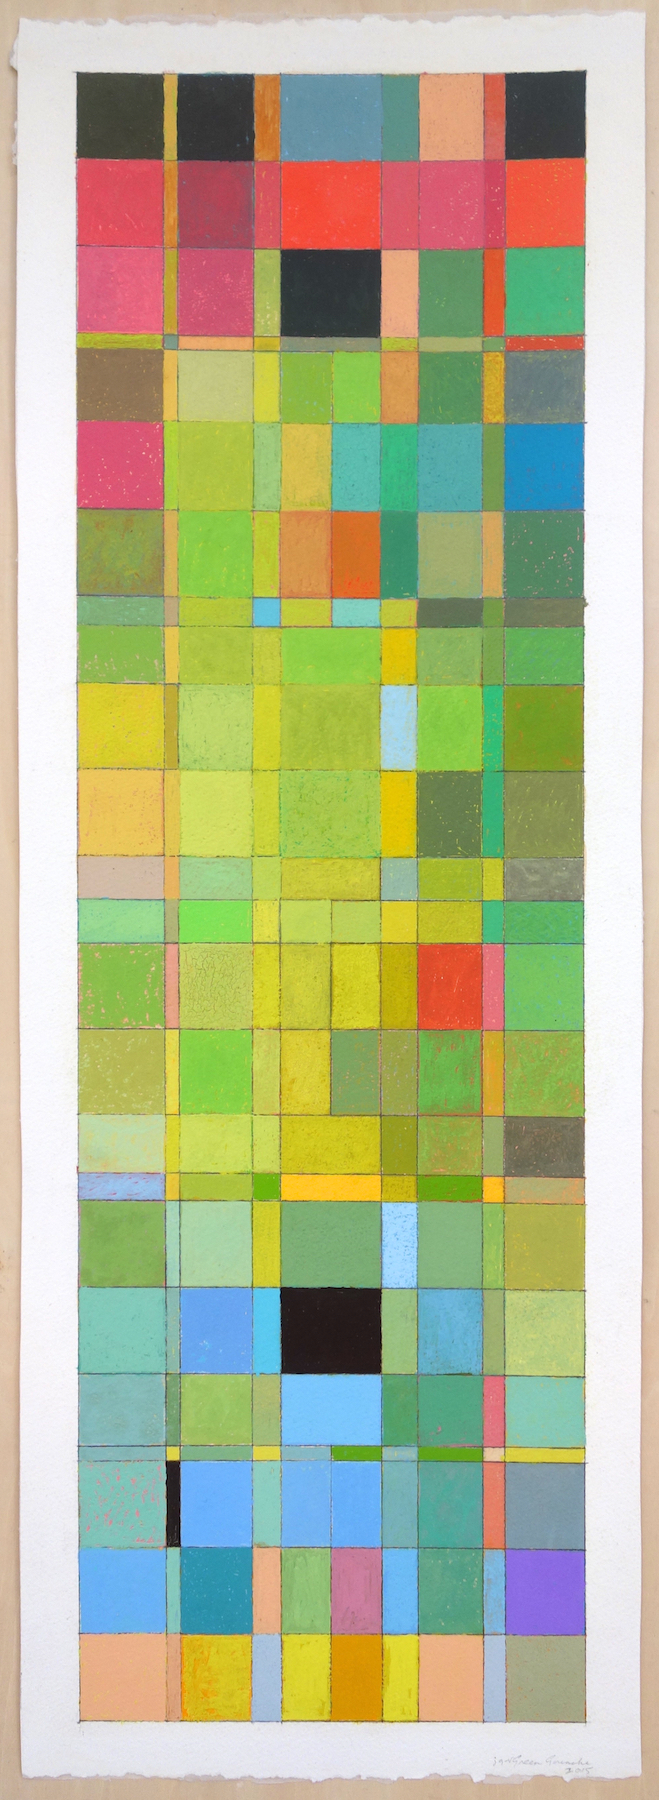 Green Gouache (2015), Gouache on Paper,  paper 30 10.25; image 28.5x8.75 in.